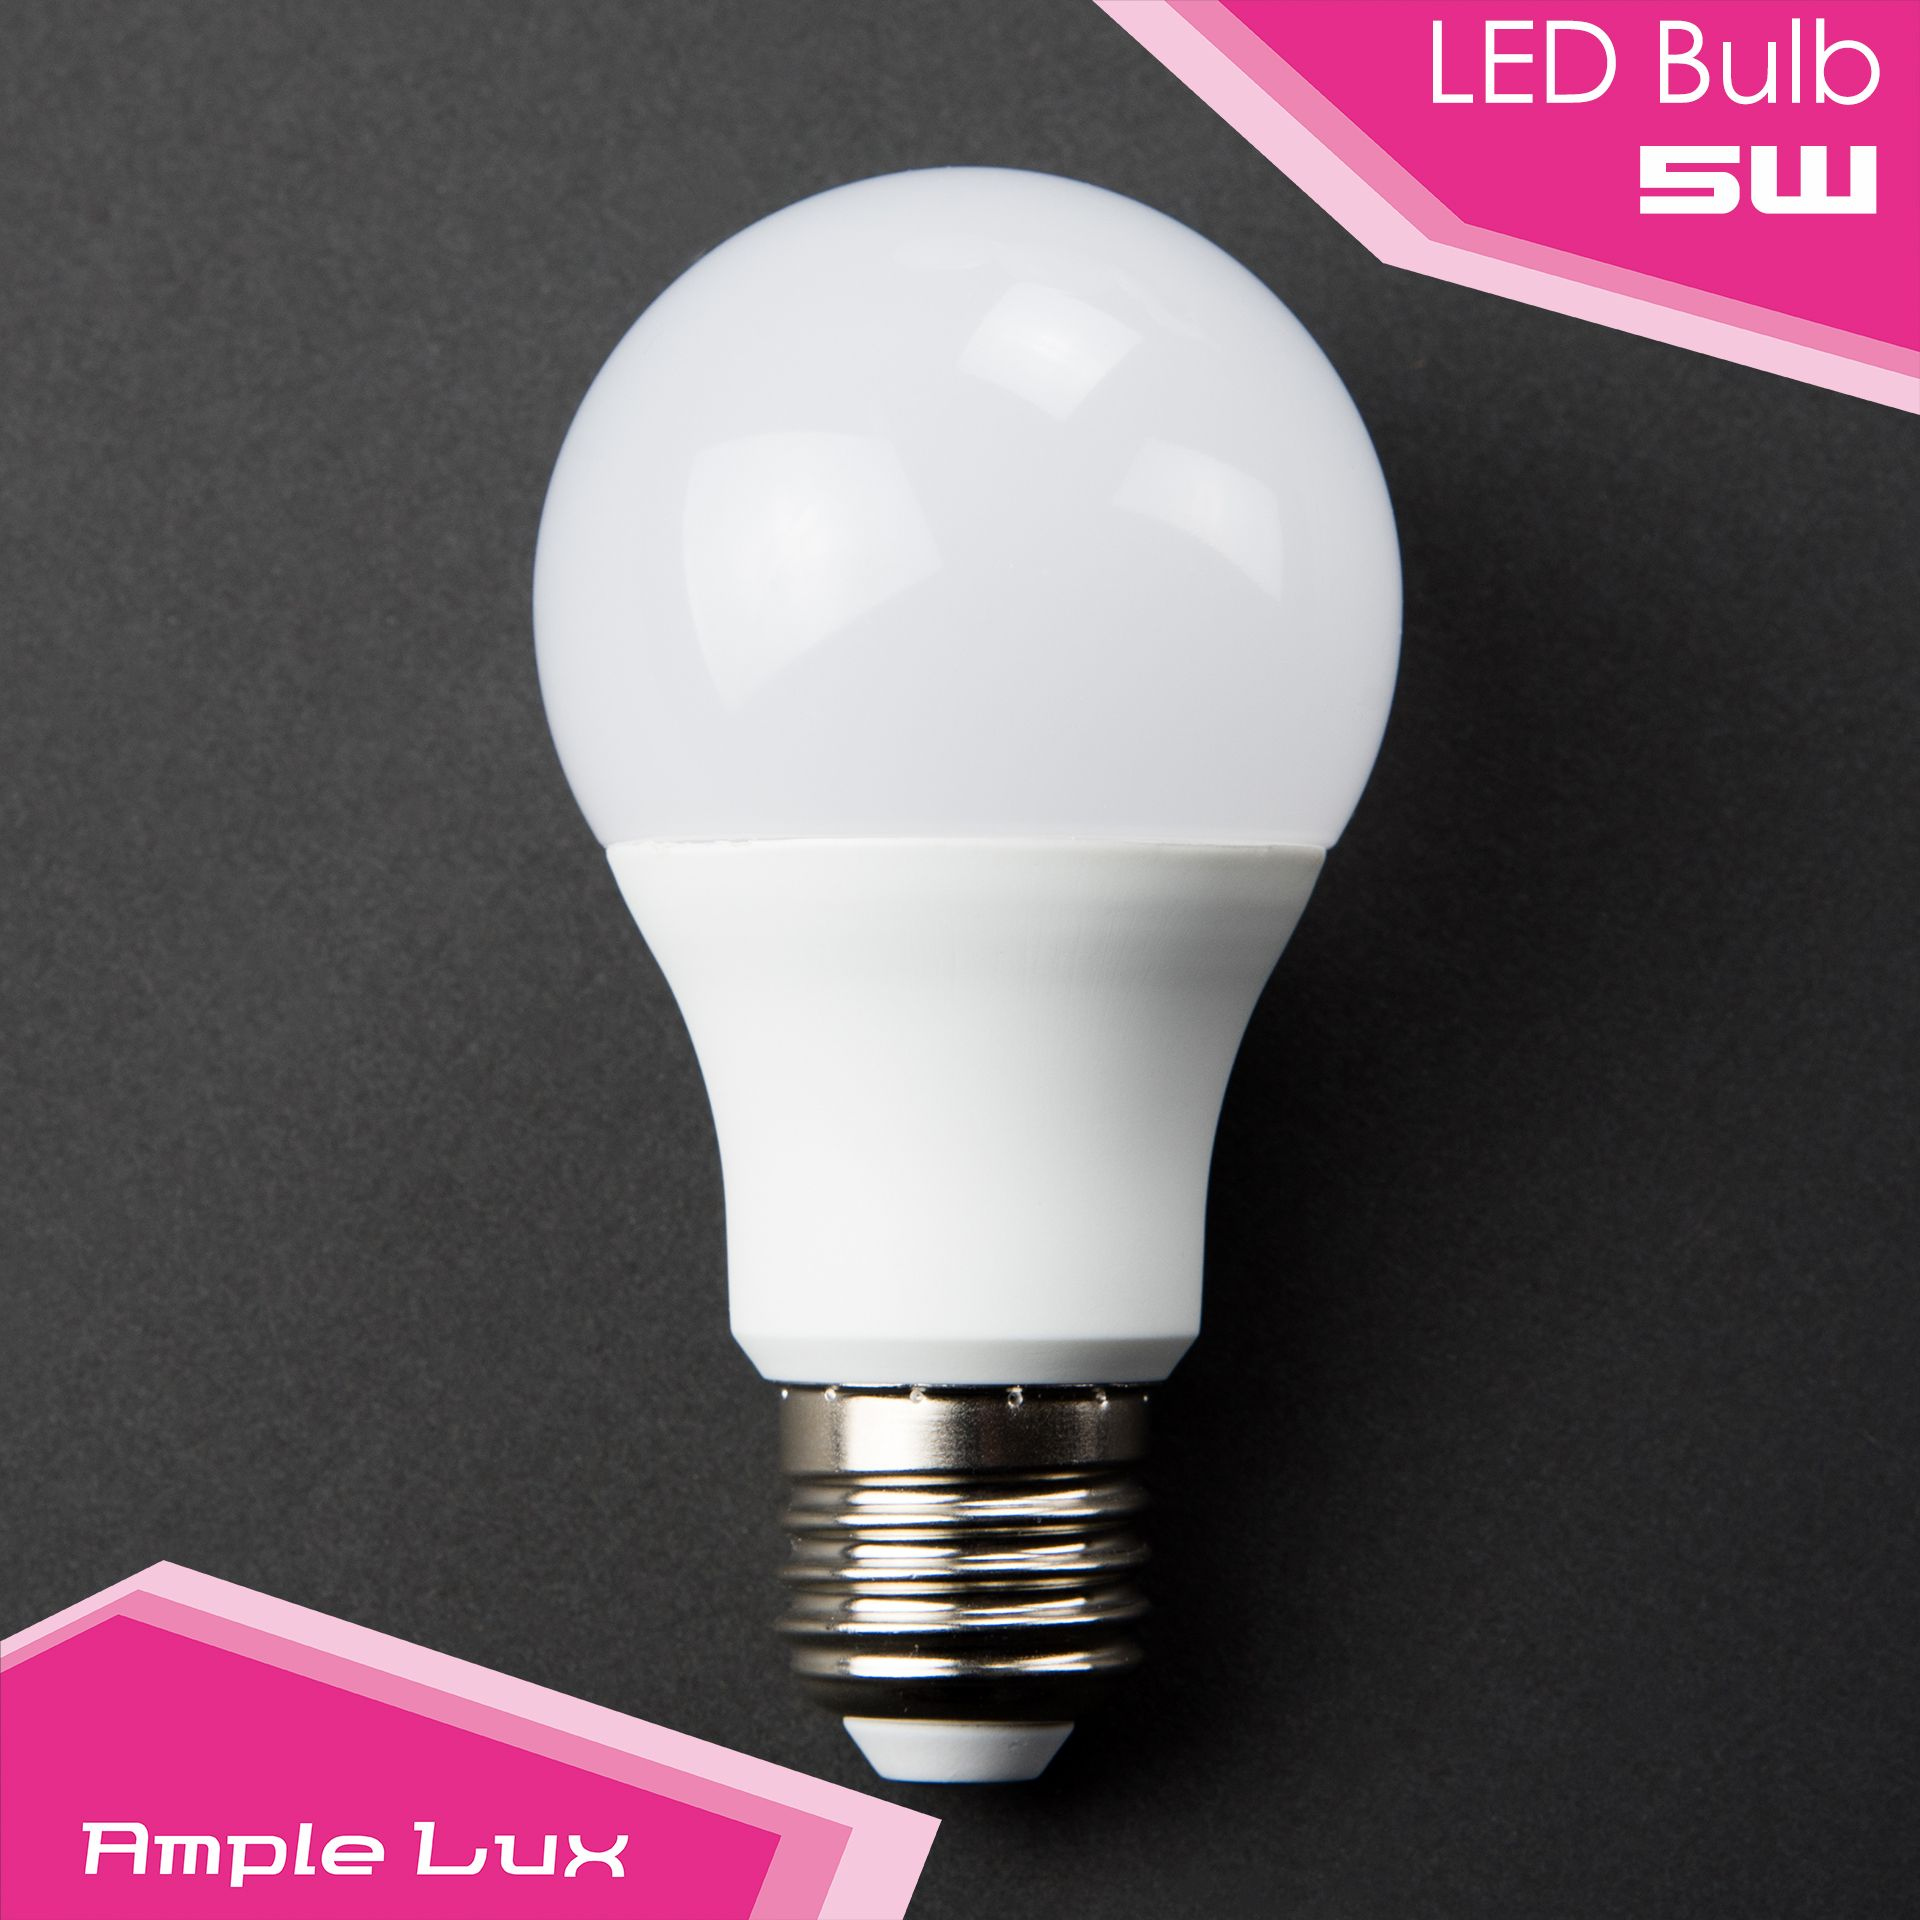 Ample Lux Led Bulb Is Designed To Resemble And Replace The Incandescent Or Halogen Lamp Up To 85 Energy Saving And Longer Lifespan Led Bulb Bulb Halogen Lamp